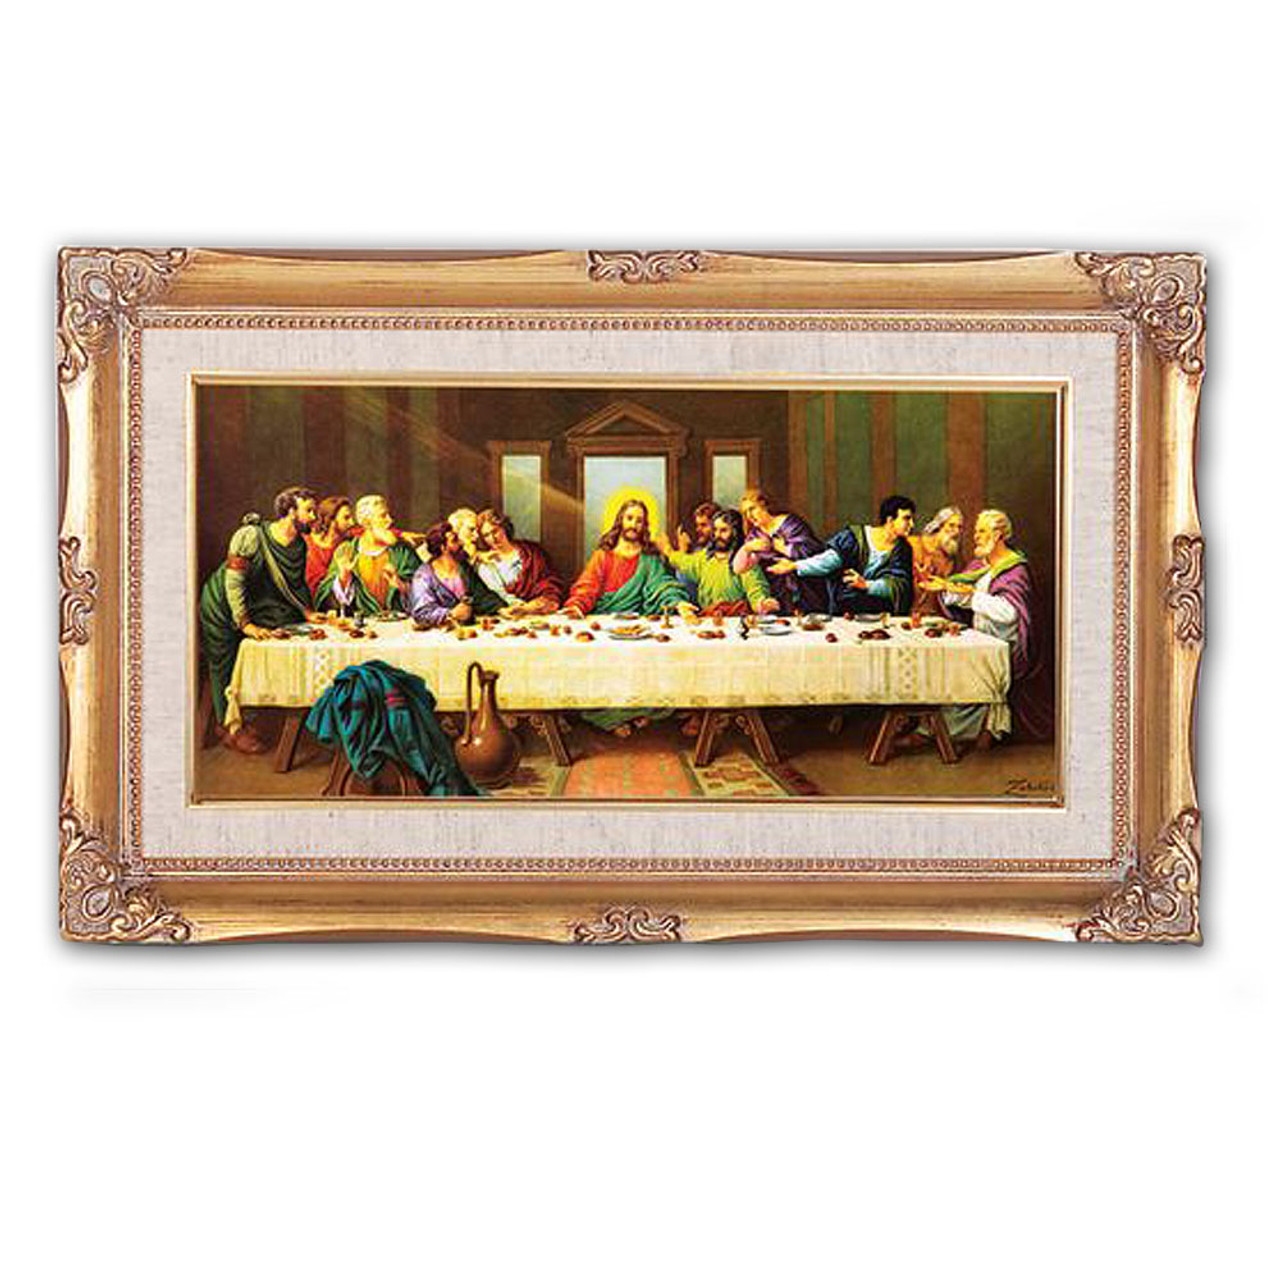 Last Supper Framed Painting by Zabateri - 19x11